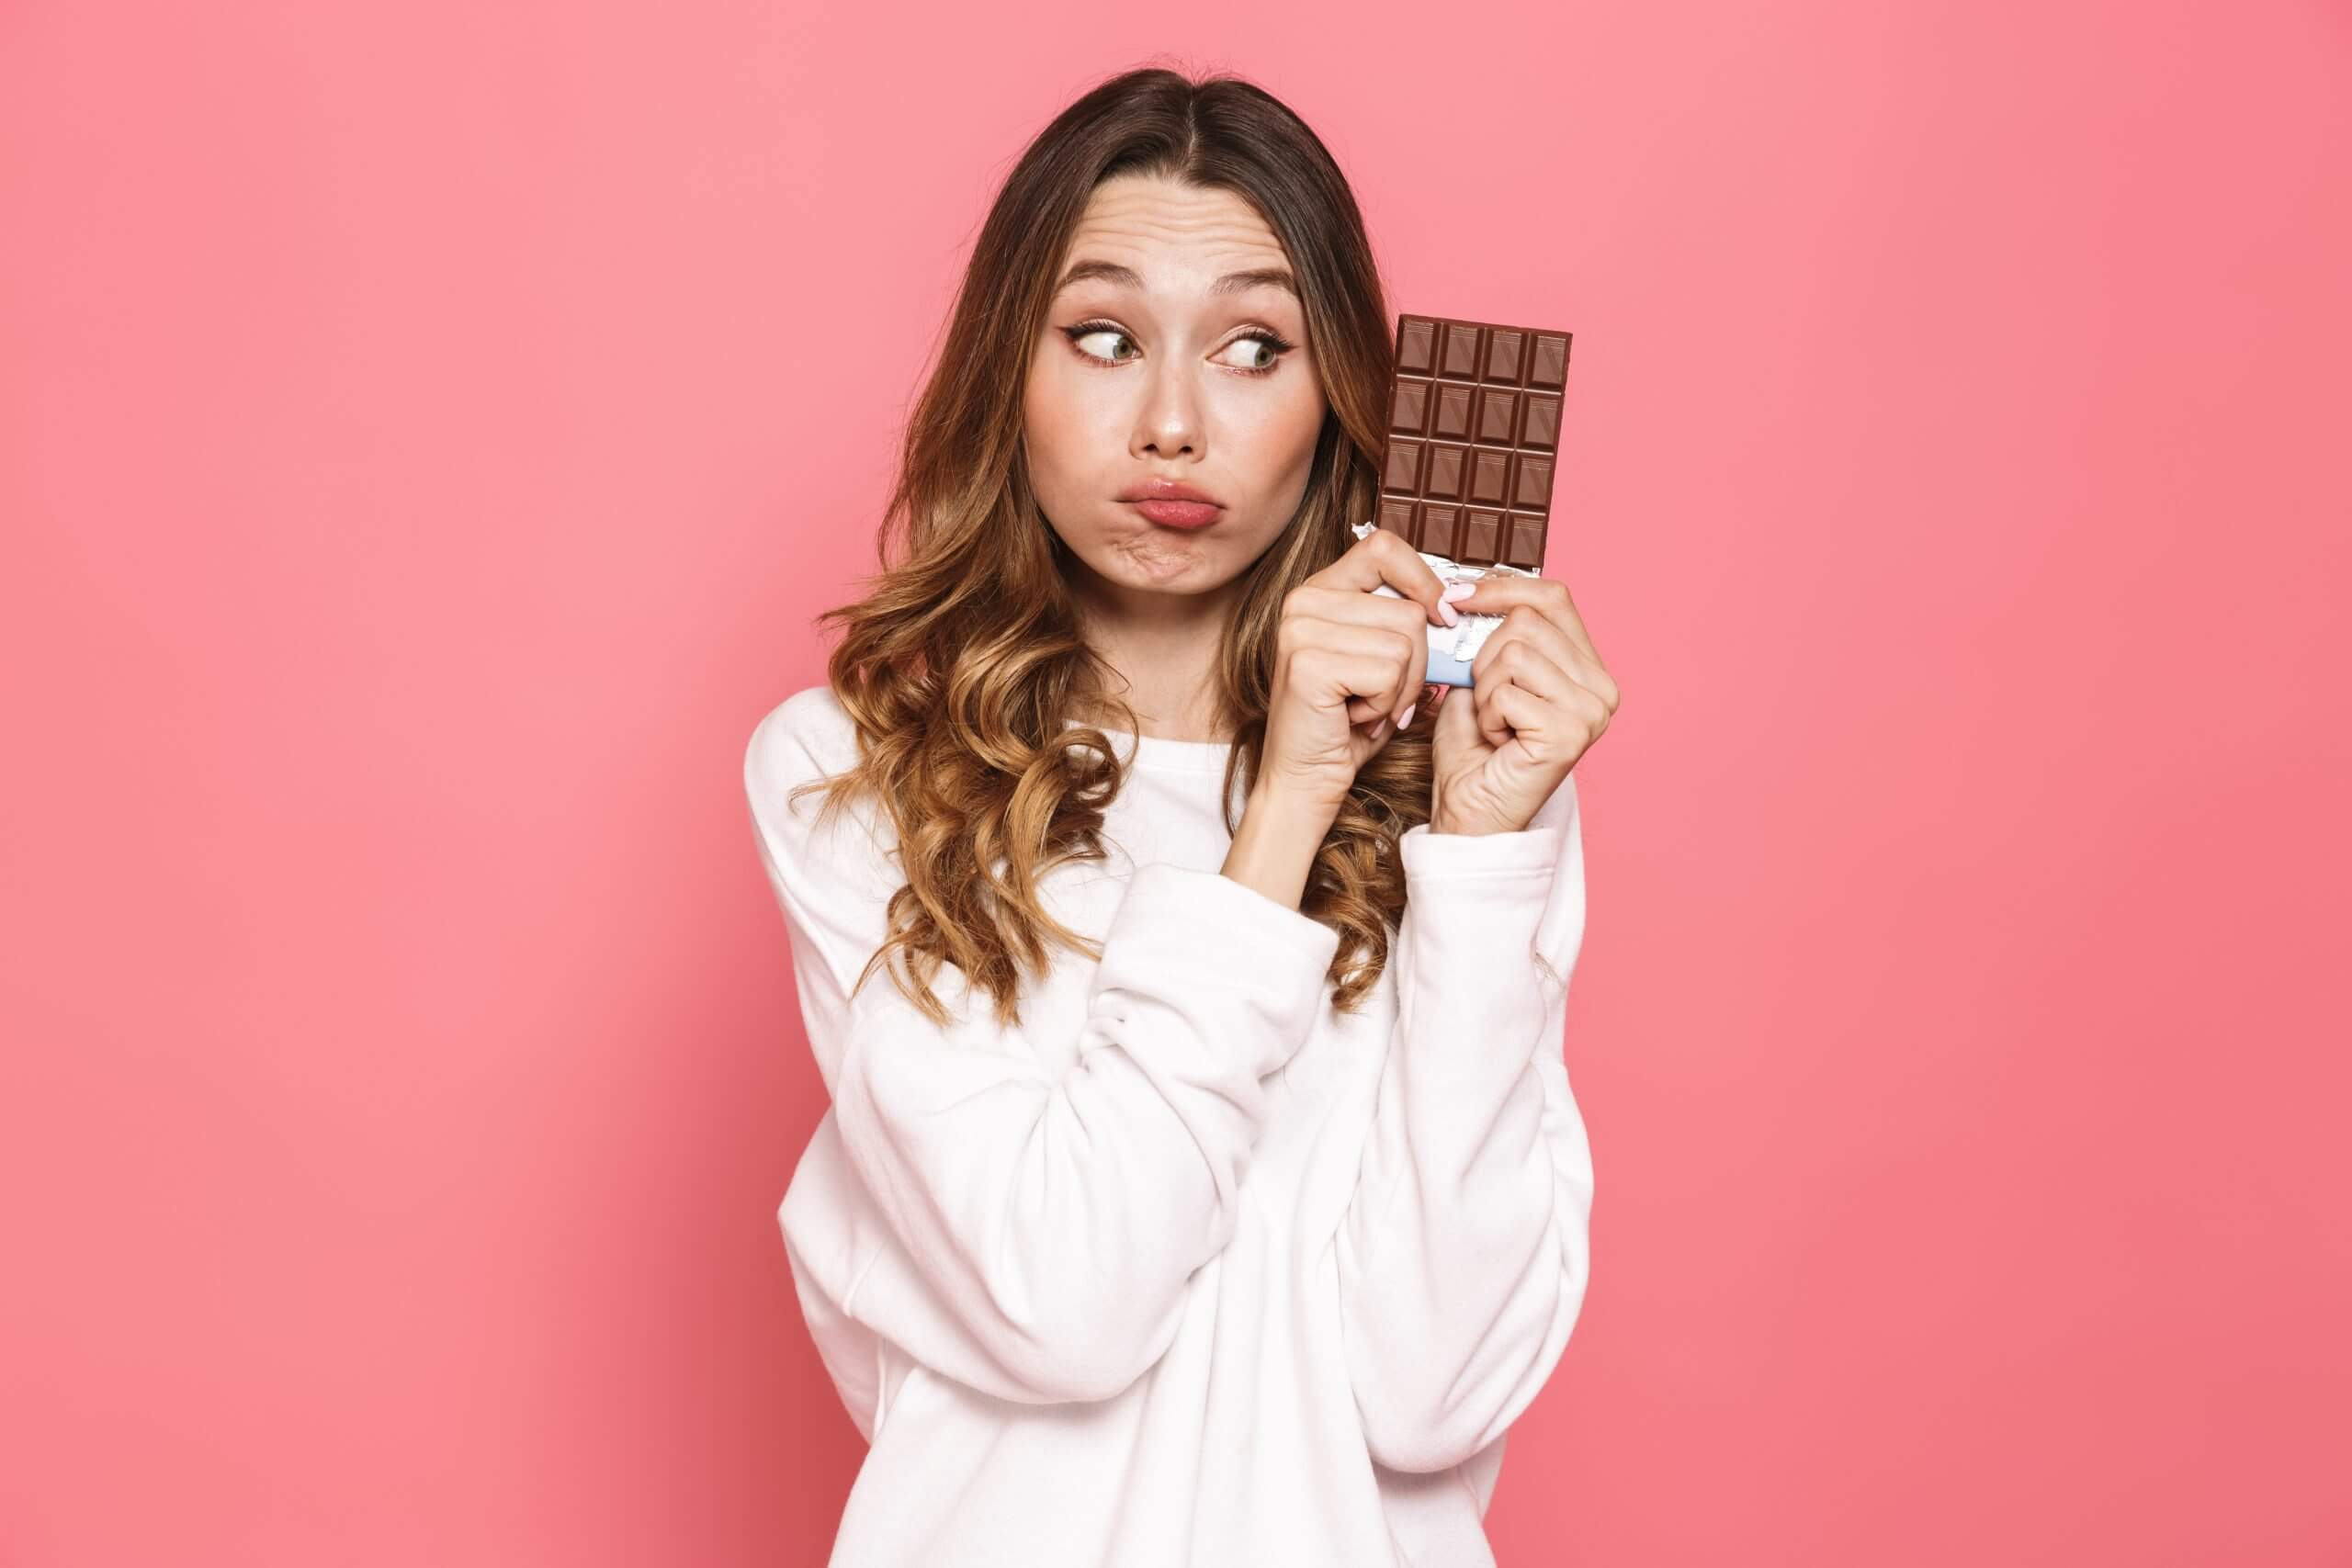 What does chocolate mean for your skin?